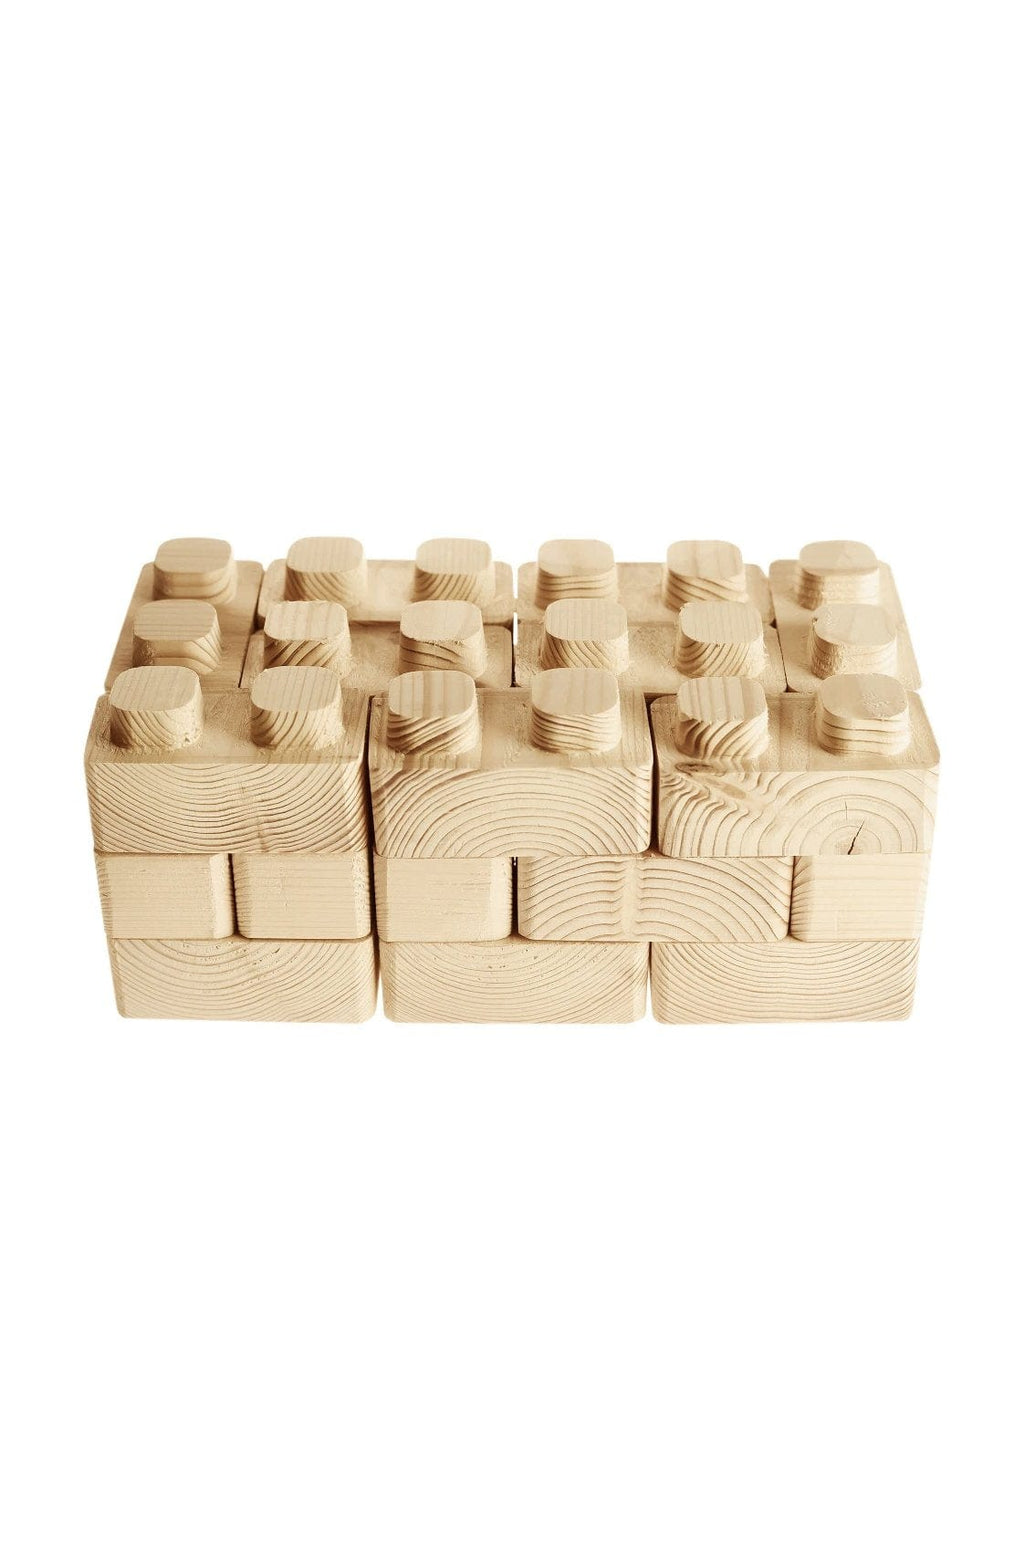 Pislik Wooden Connecting Blocks (Pre-Order April) - Hello Little Birdie